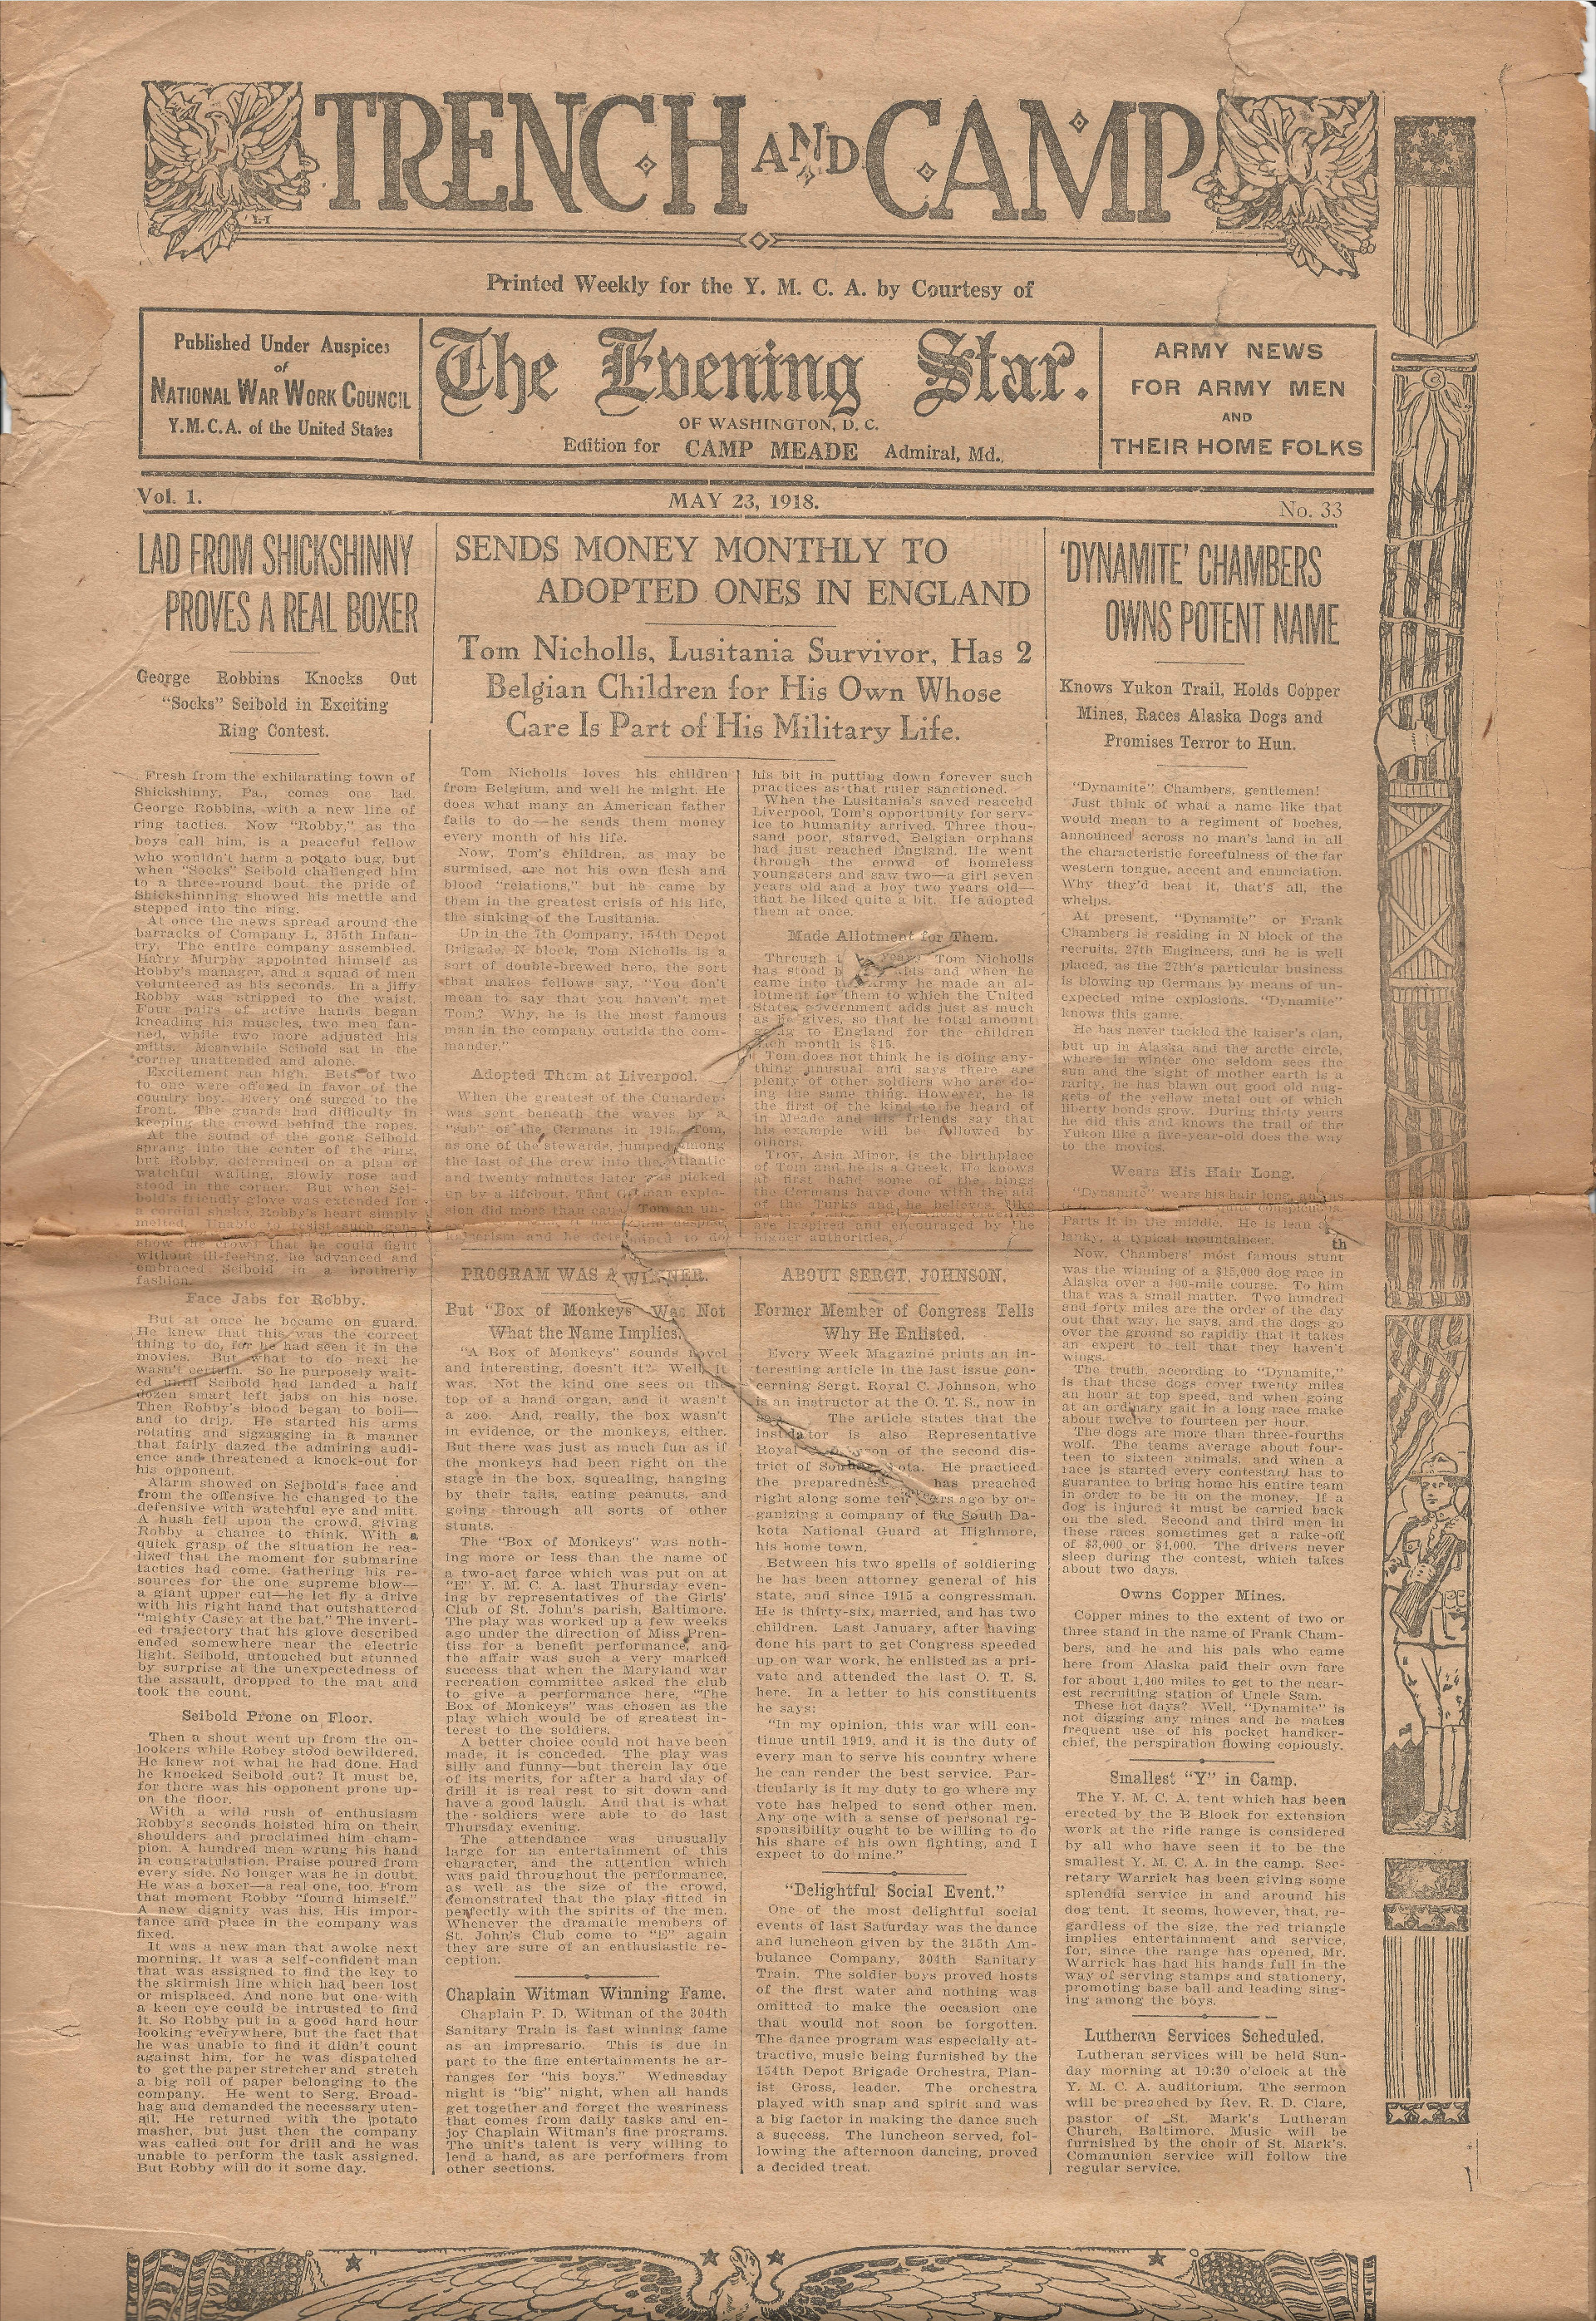 Trench and Camp Newspaper May 23 1918 Page 1